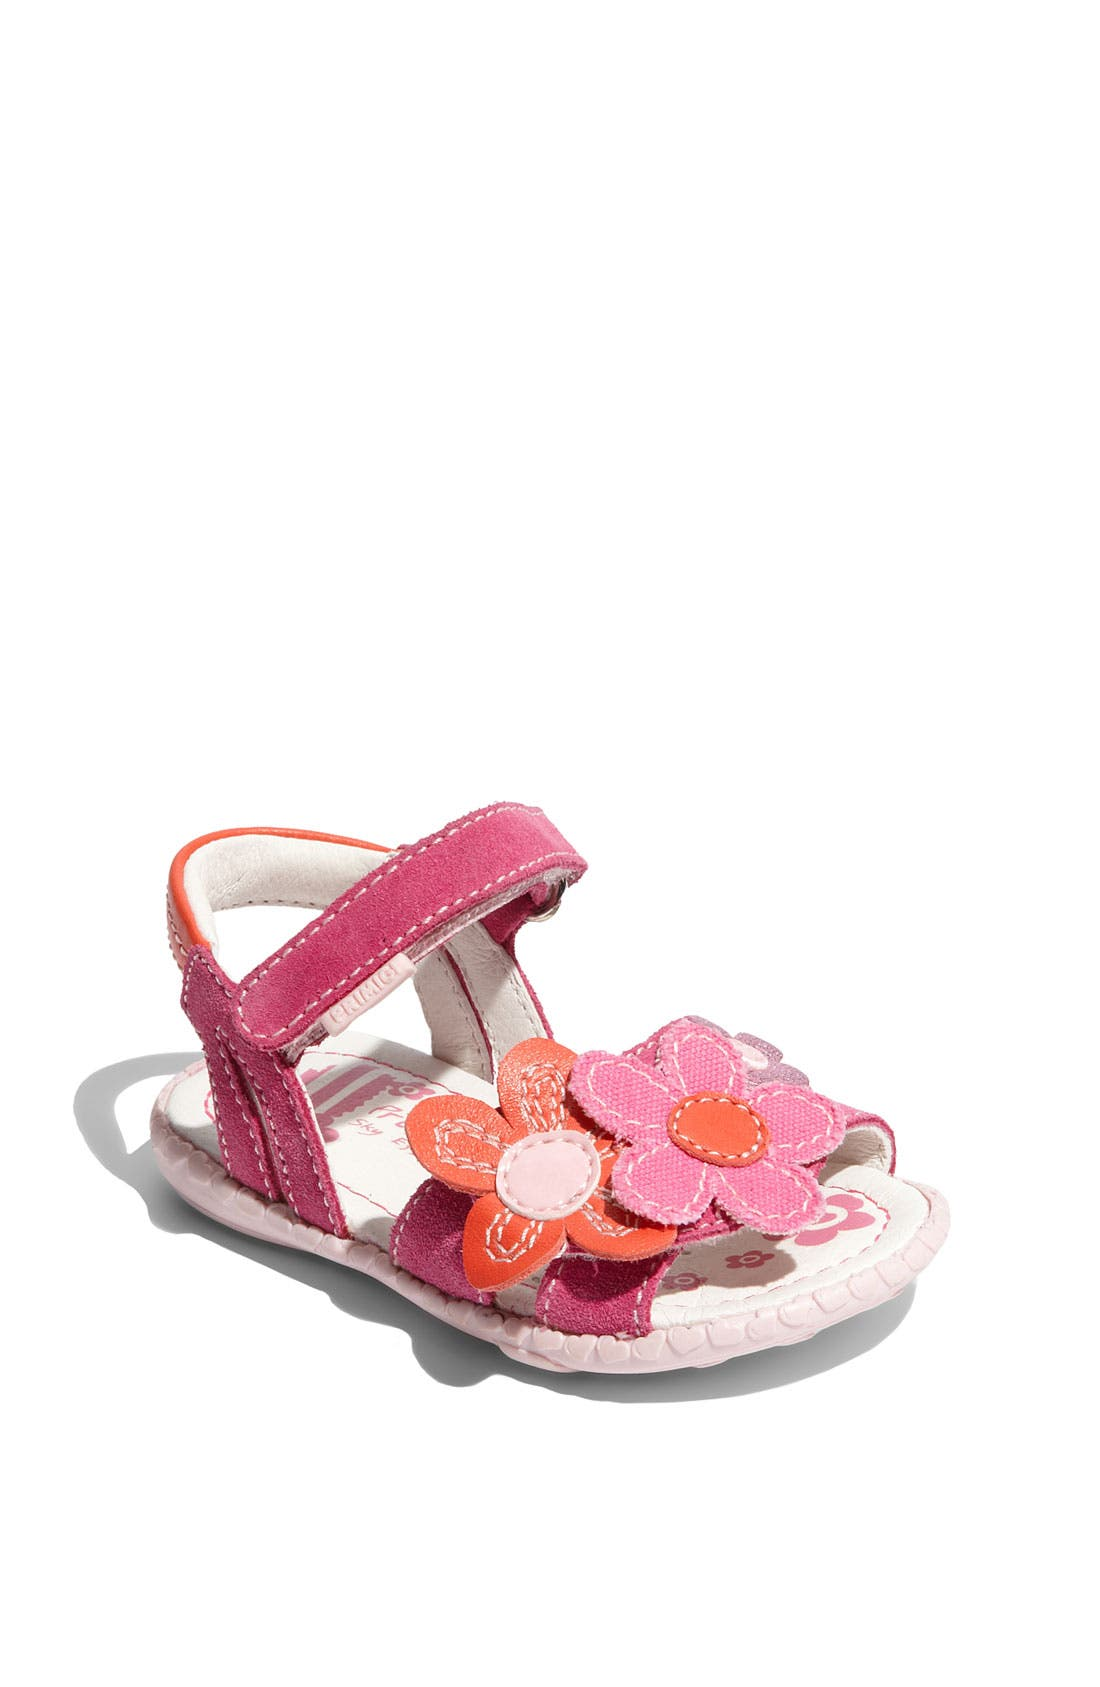 Main Image - Primigi 'Julisa' Sandal (Toddler)